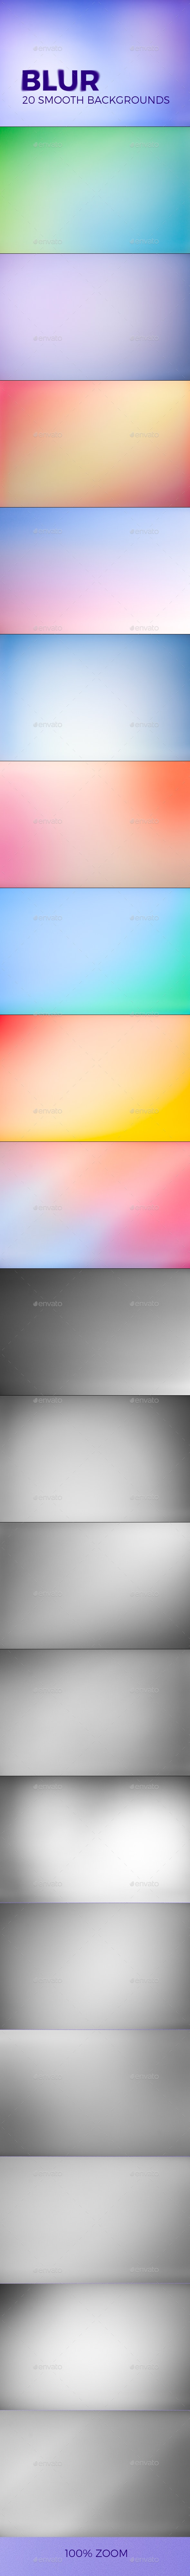 BLUR – 20 Smooth Backgrounds - Backgrounds Graphics